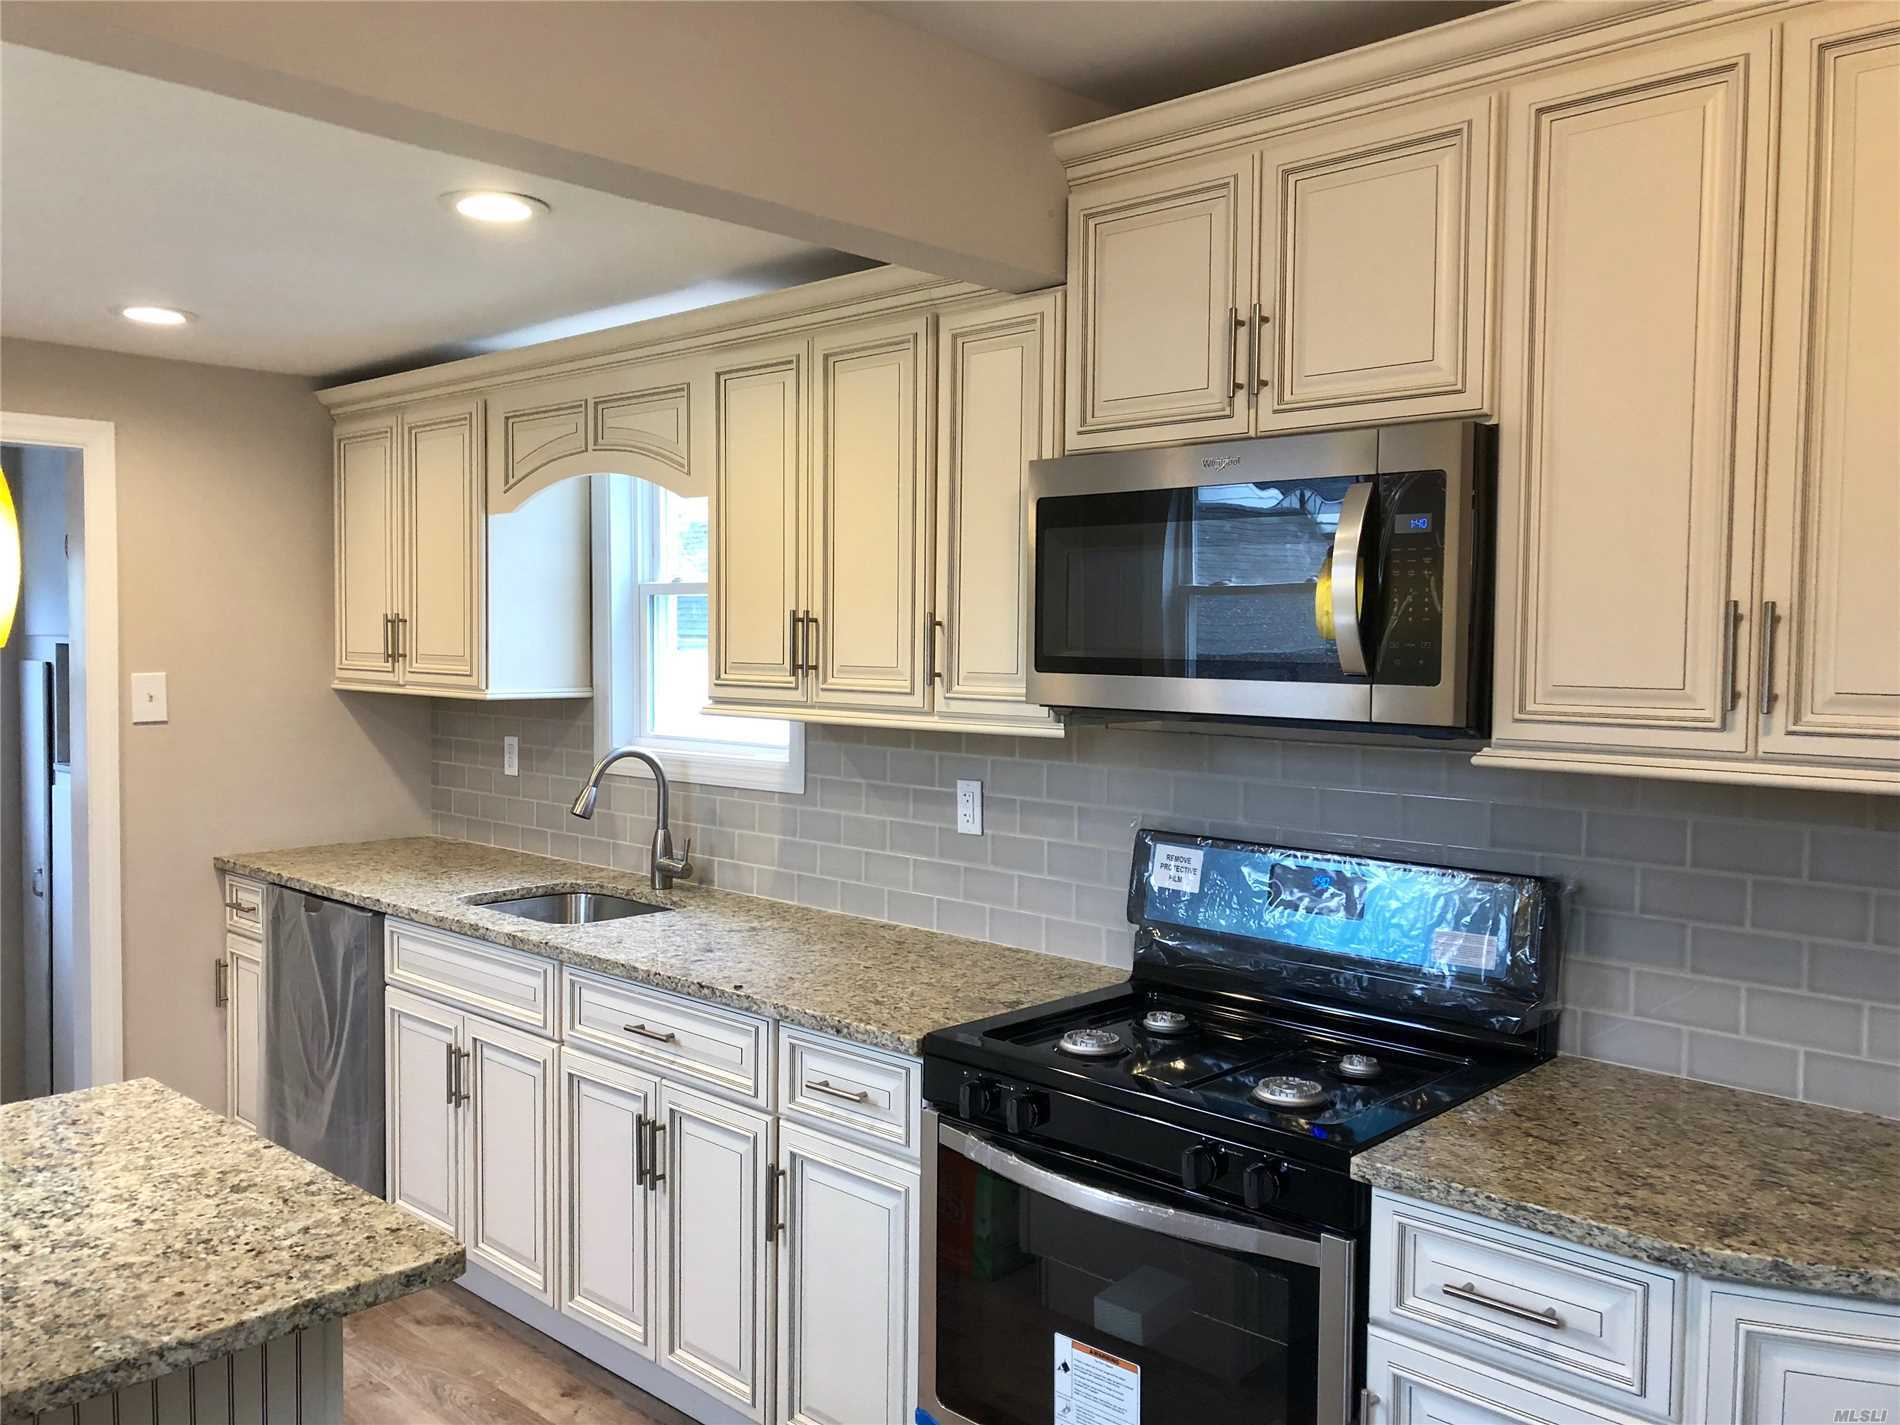 Charming Redone Cape In Sd#17 With Great Proximity To All. Features New Kitchen W/Granite And Stainless Steel Appliances.New Bath And Hardwood Floors. Updated Roof W/New Windows And Gutters. This One Wont Last!